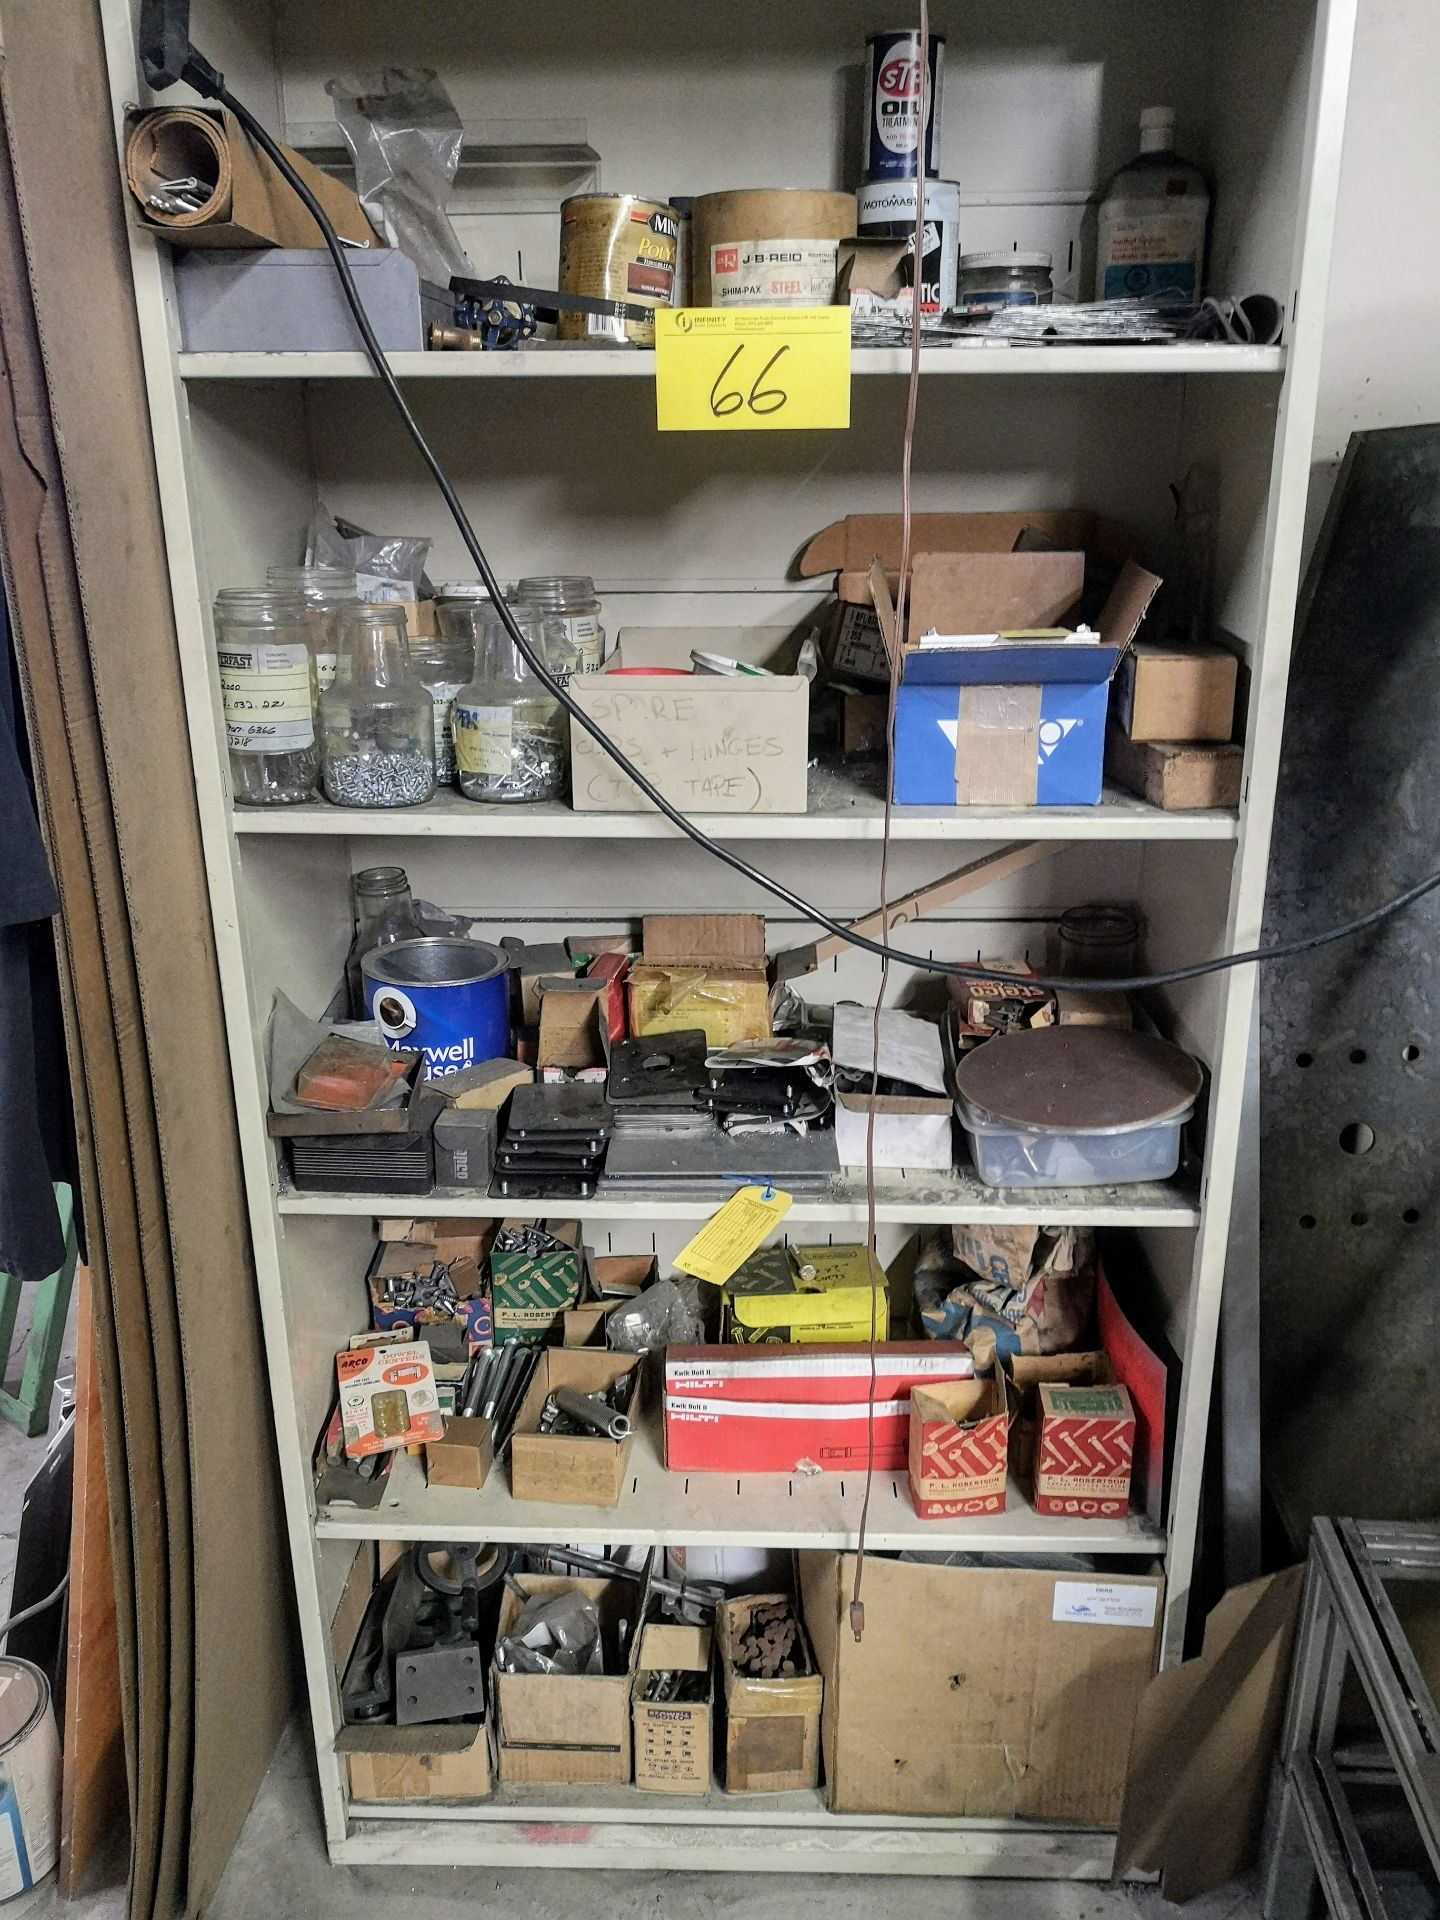 Lot 66 - LOT CONTENTS OF (2) CABINETS, GRINDING/CUTTING DISCS, NUTS, BOLTS, ETC.